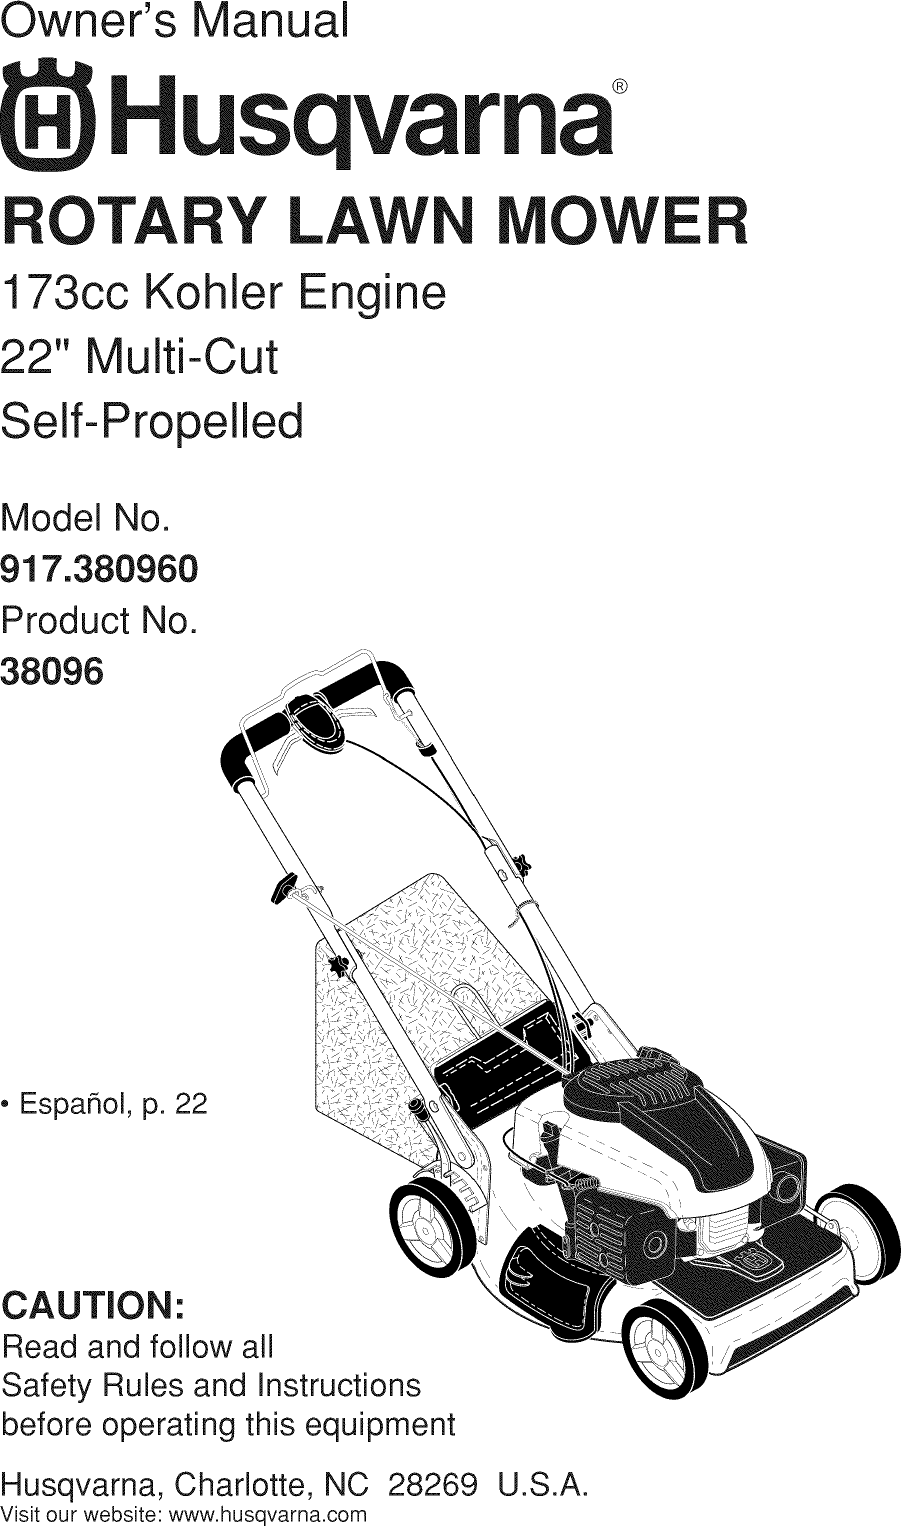 Husqvarna 917380960 1111001L User Manual LAWN MOWER